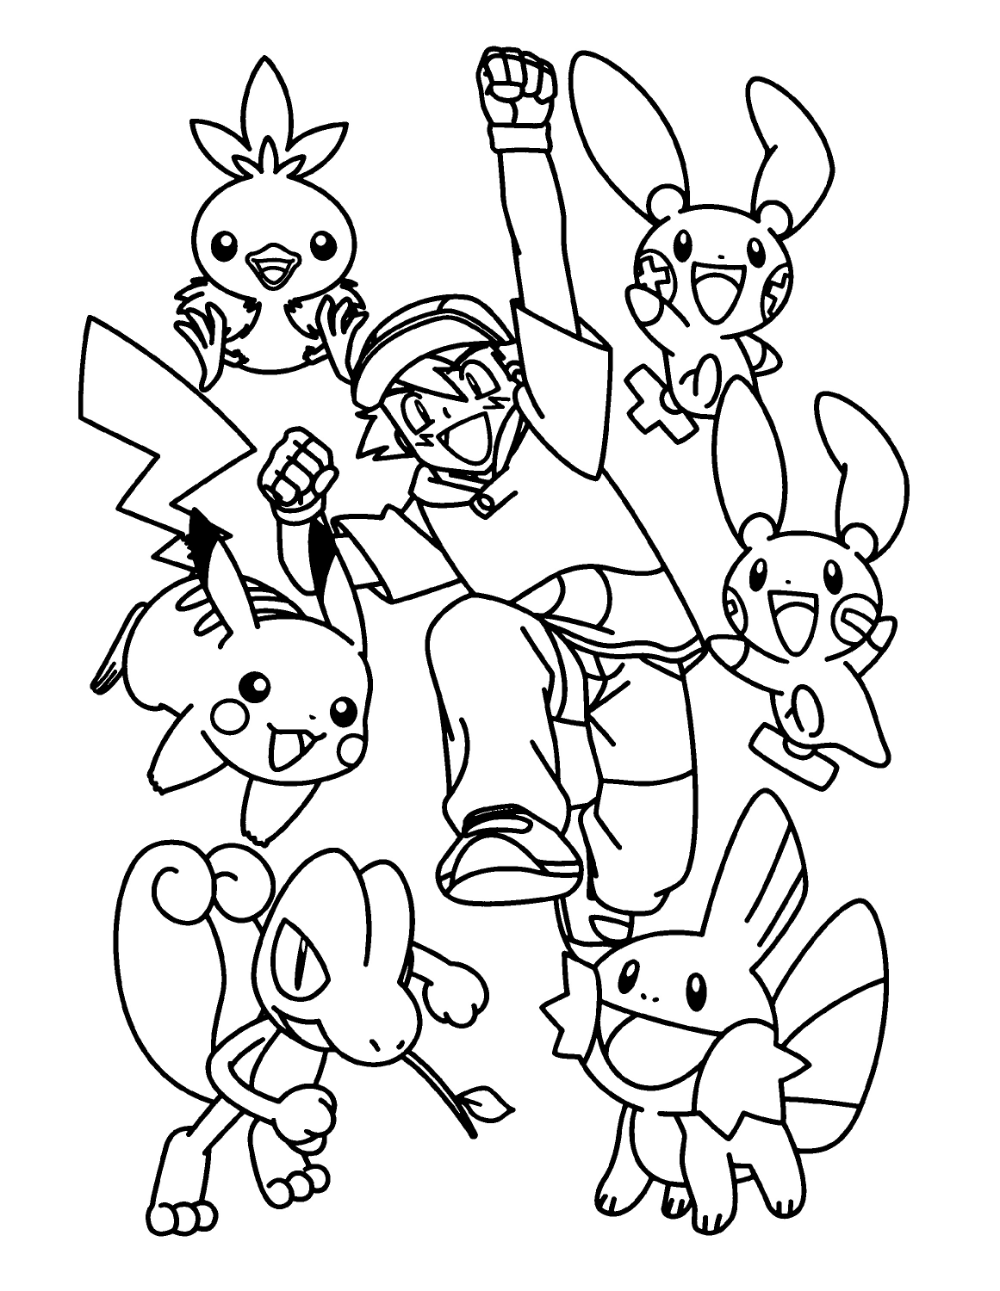 Pokemon Coloring Pages Pokemon Coloring Pages Pokemon Coloring Coloring Pages